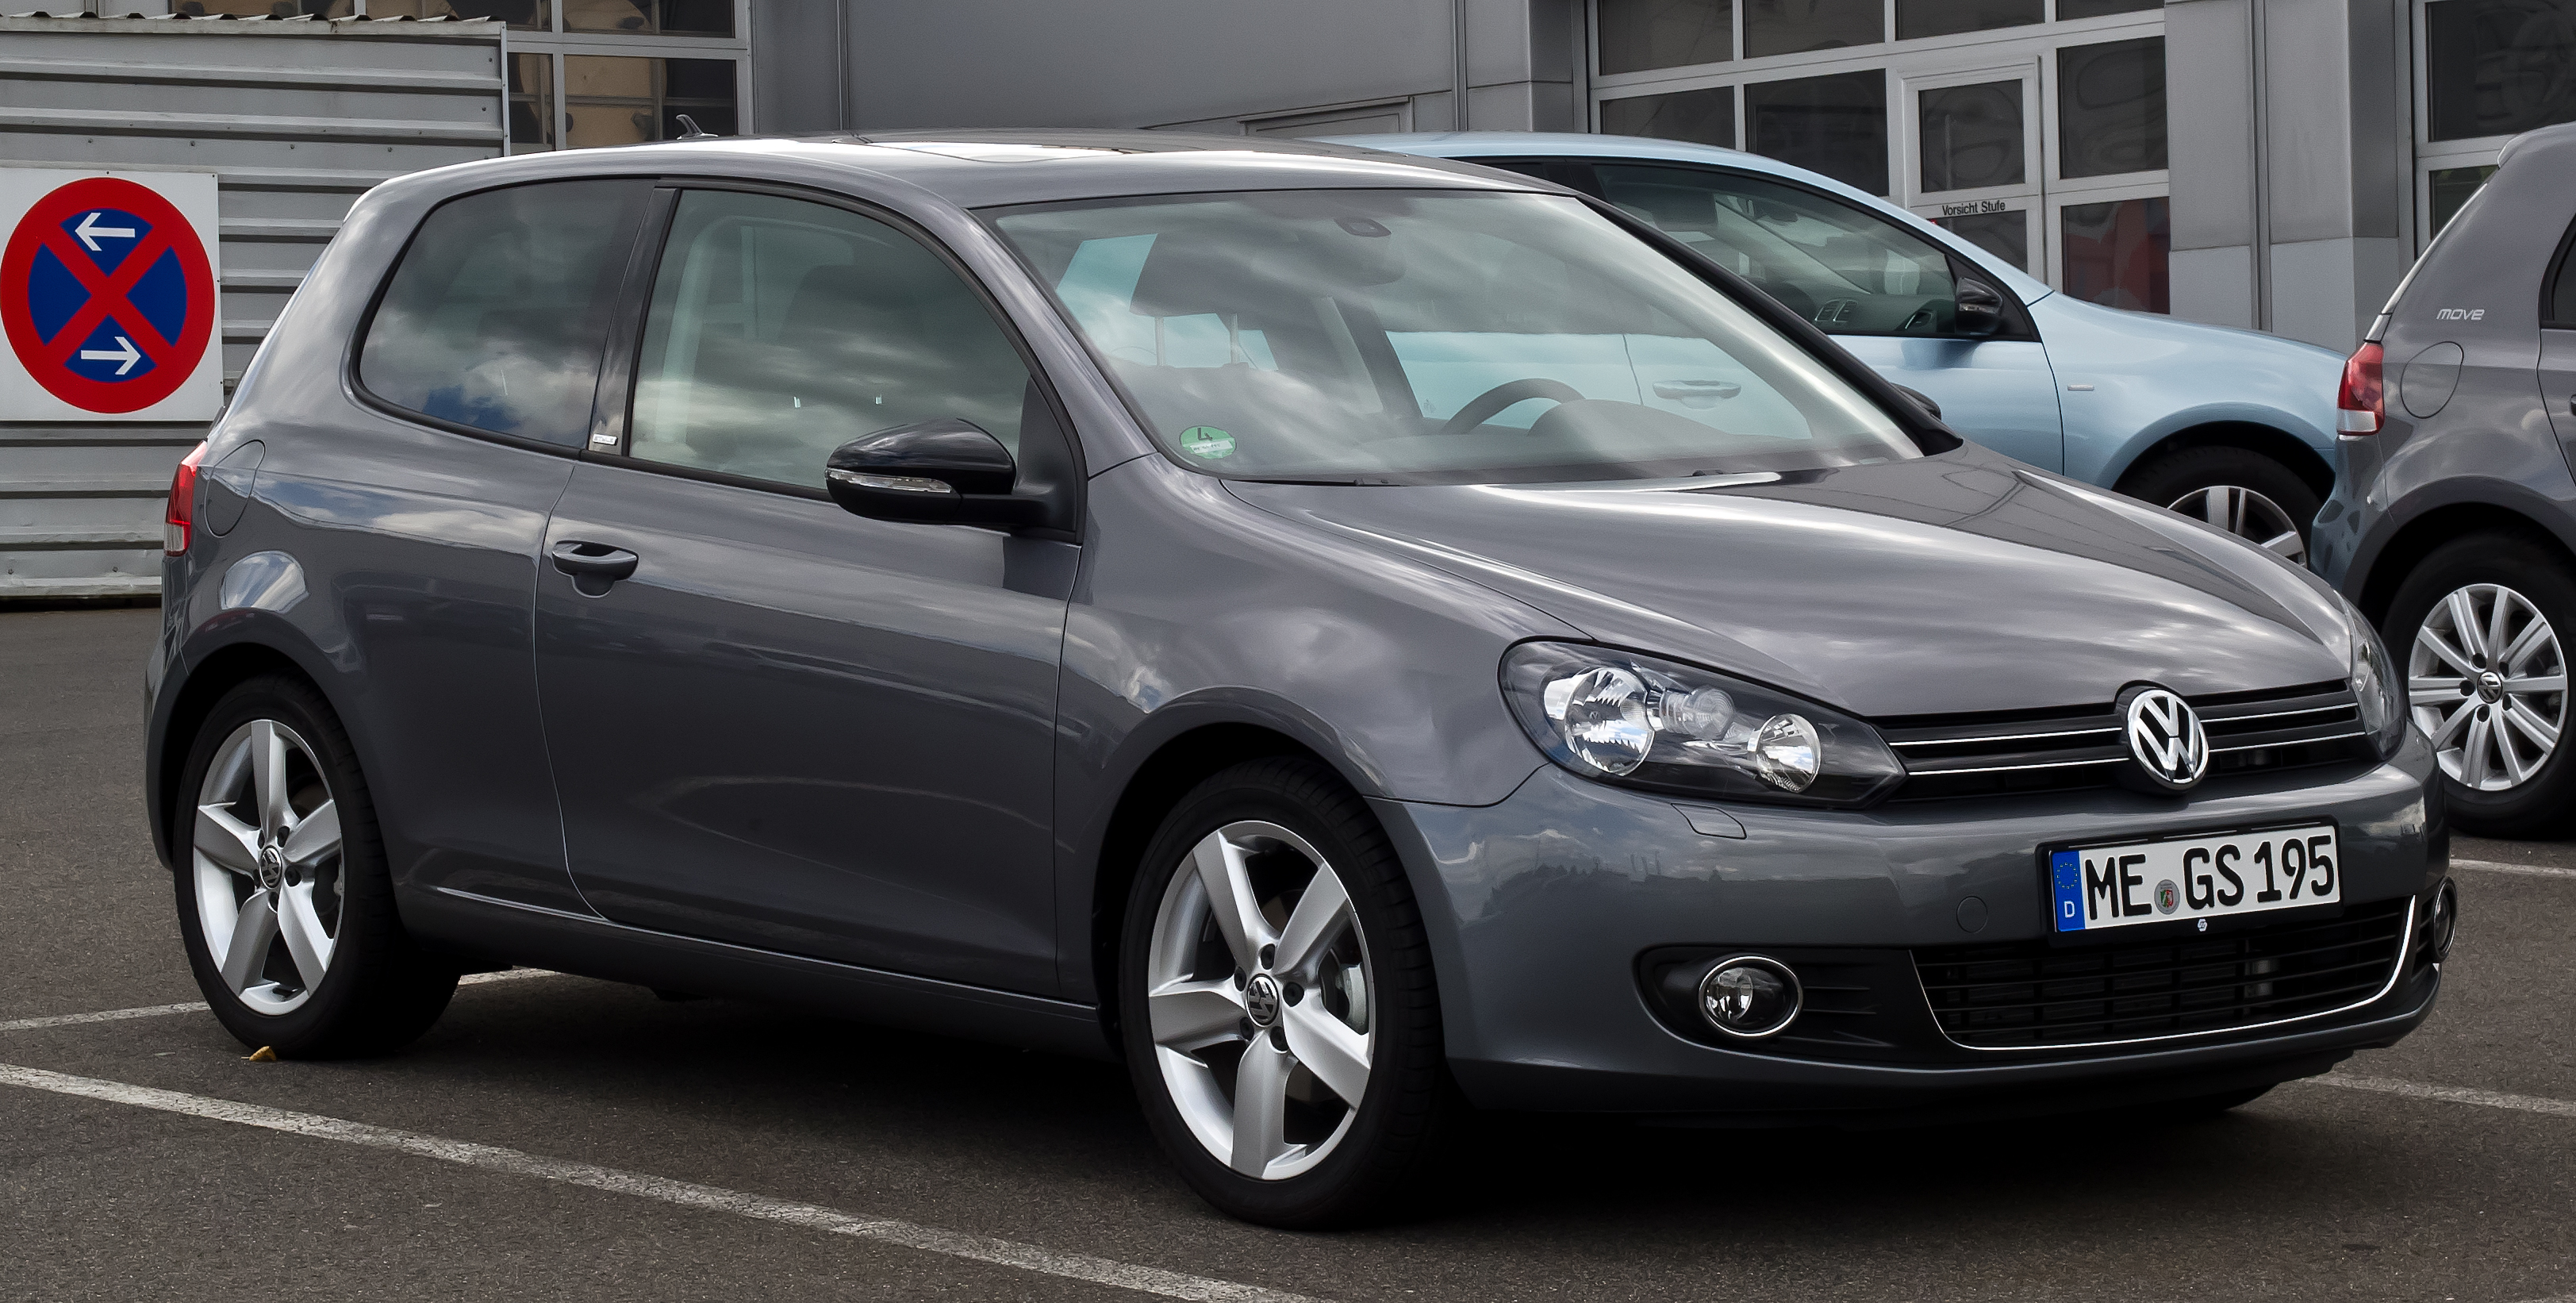 volkswagen golf mk6 wikiwand. Black Bedroom Furniture Sets. Home Design Ideas